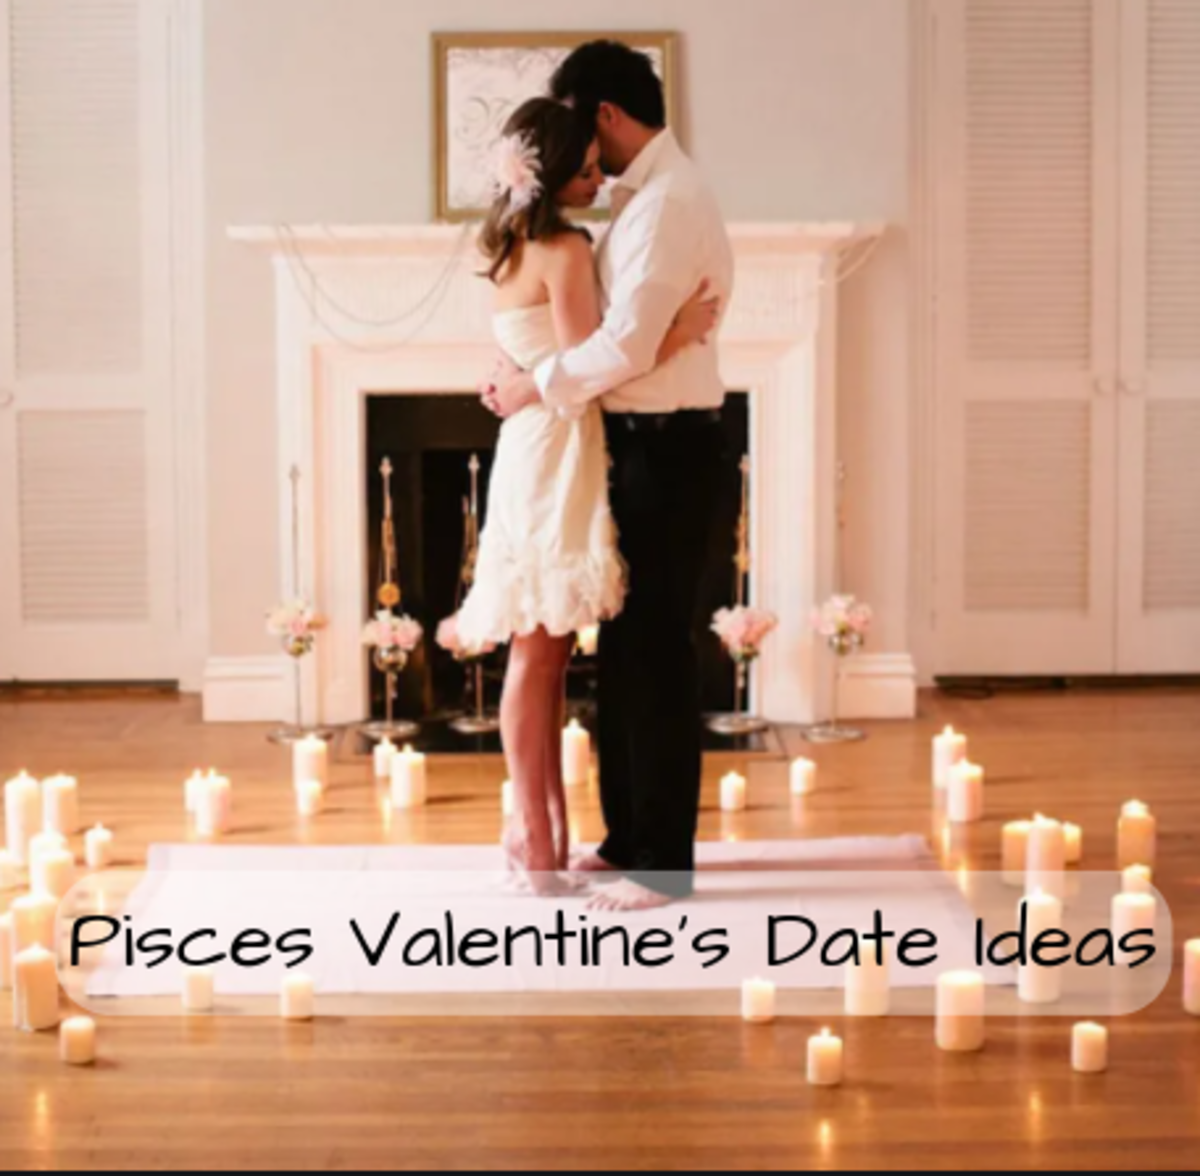 Pisces wants true love and magic. (1) Add candles, Christmas lights, and anything that glows into the night. (2) Go to an aquarium. (3) Go for a hike around waterfalls and bridges. (4) Dance under chandeliers. (5) Eat cake.